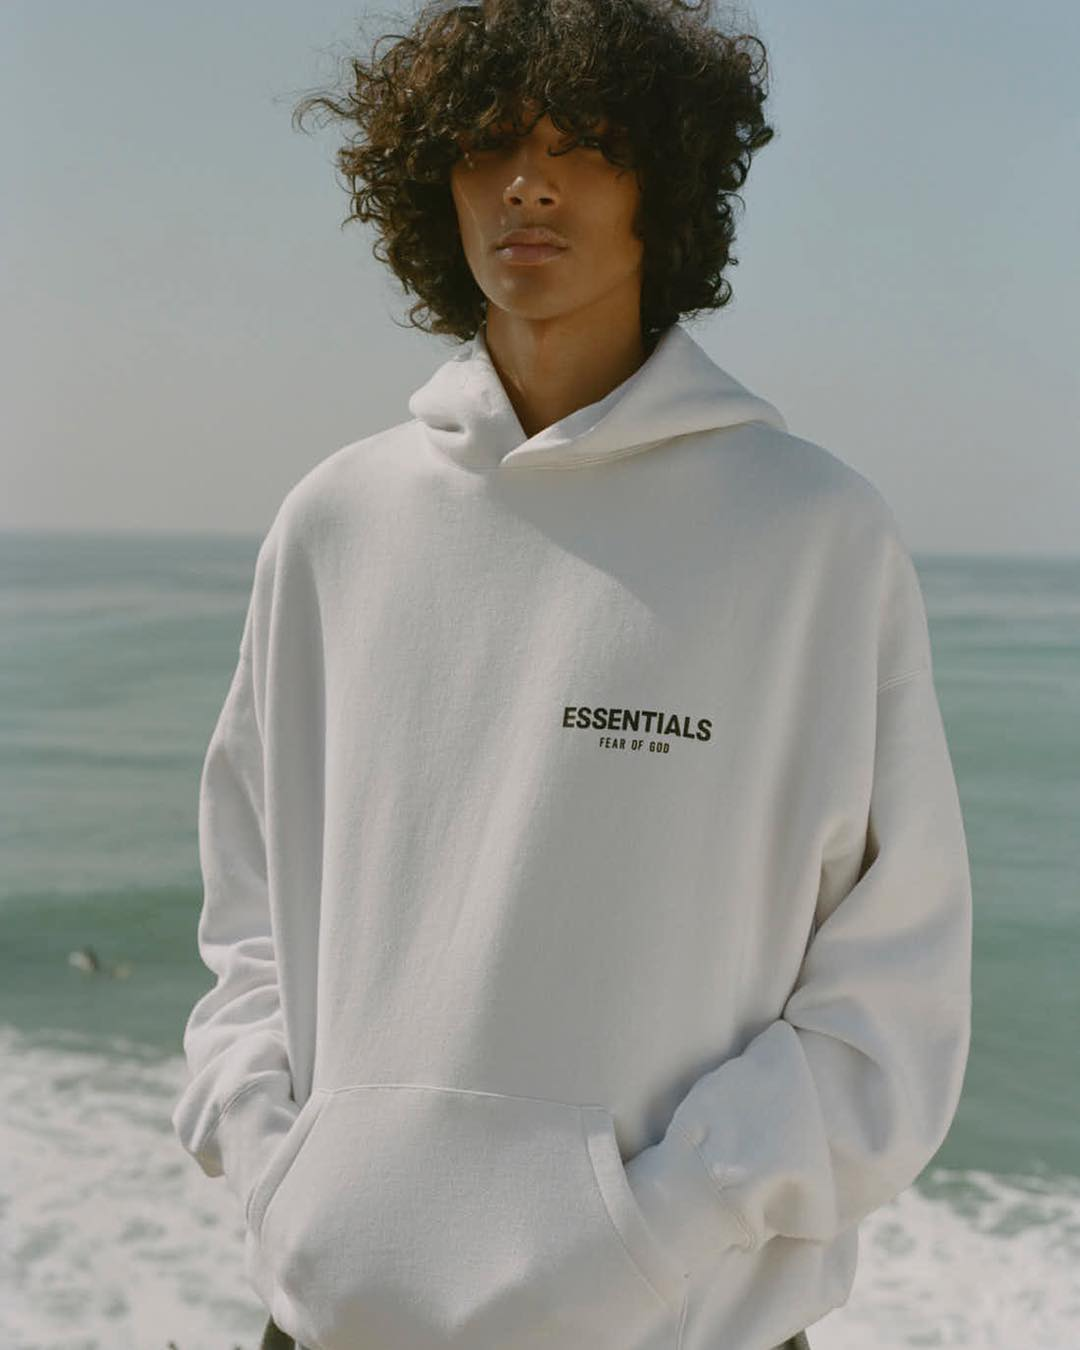 fear-of-god-essentials-2018-california-winter-collection-20181206